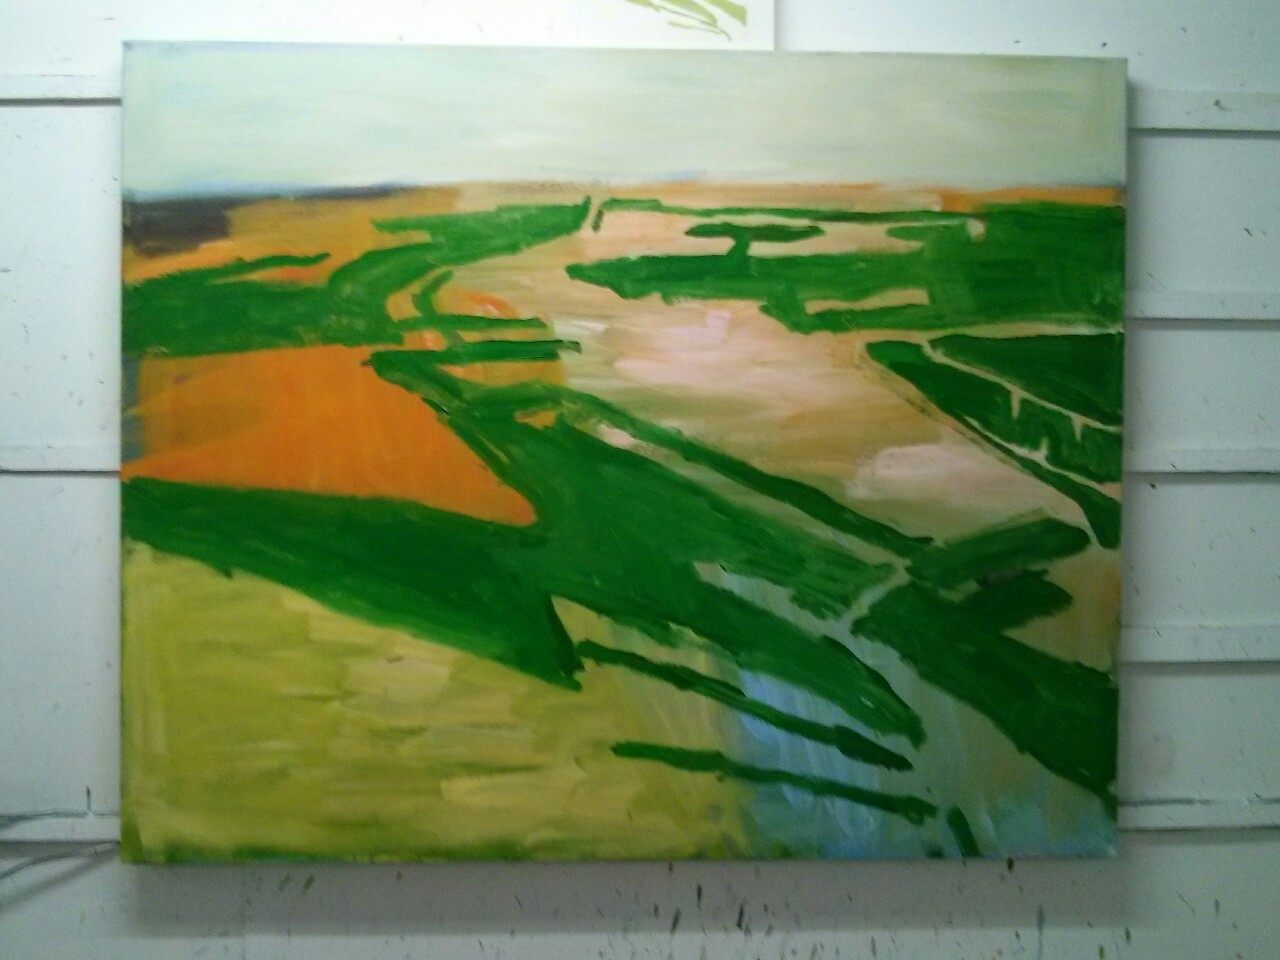 … and now it looks like this. There is something in this now. I need to think about how the horizon meets the sky and sort out the upper left hand edge of the canvas though.